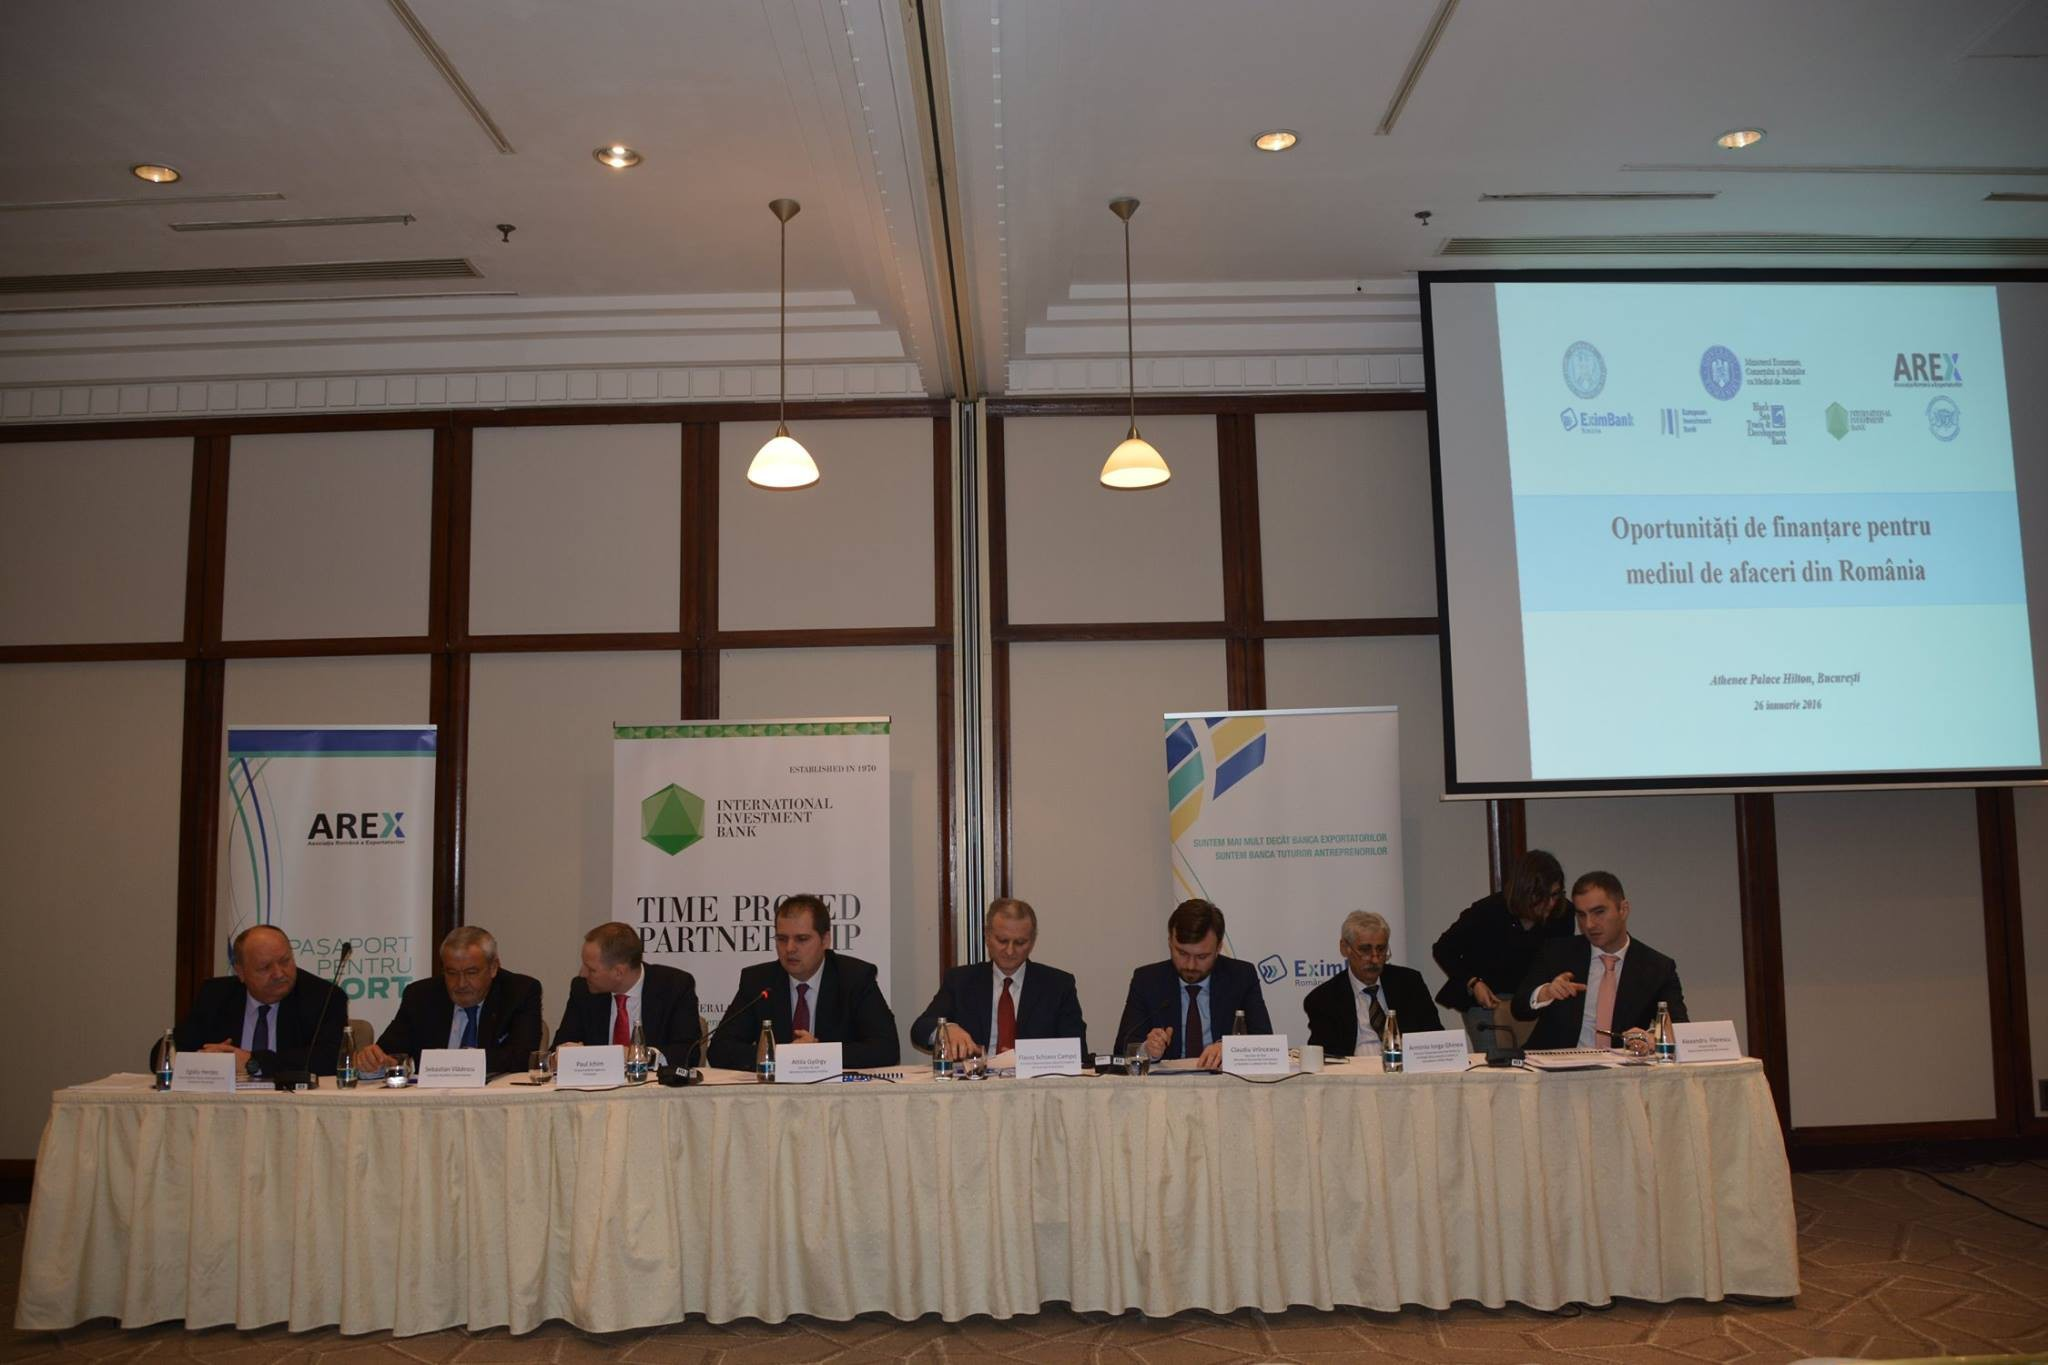 IIB expands its presence in Romania